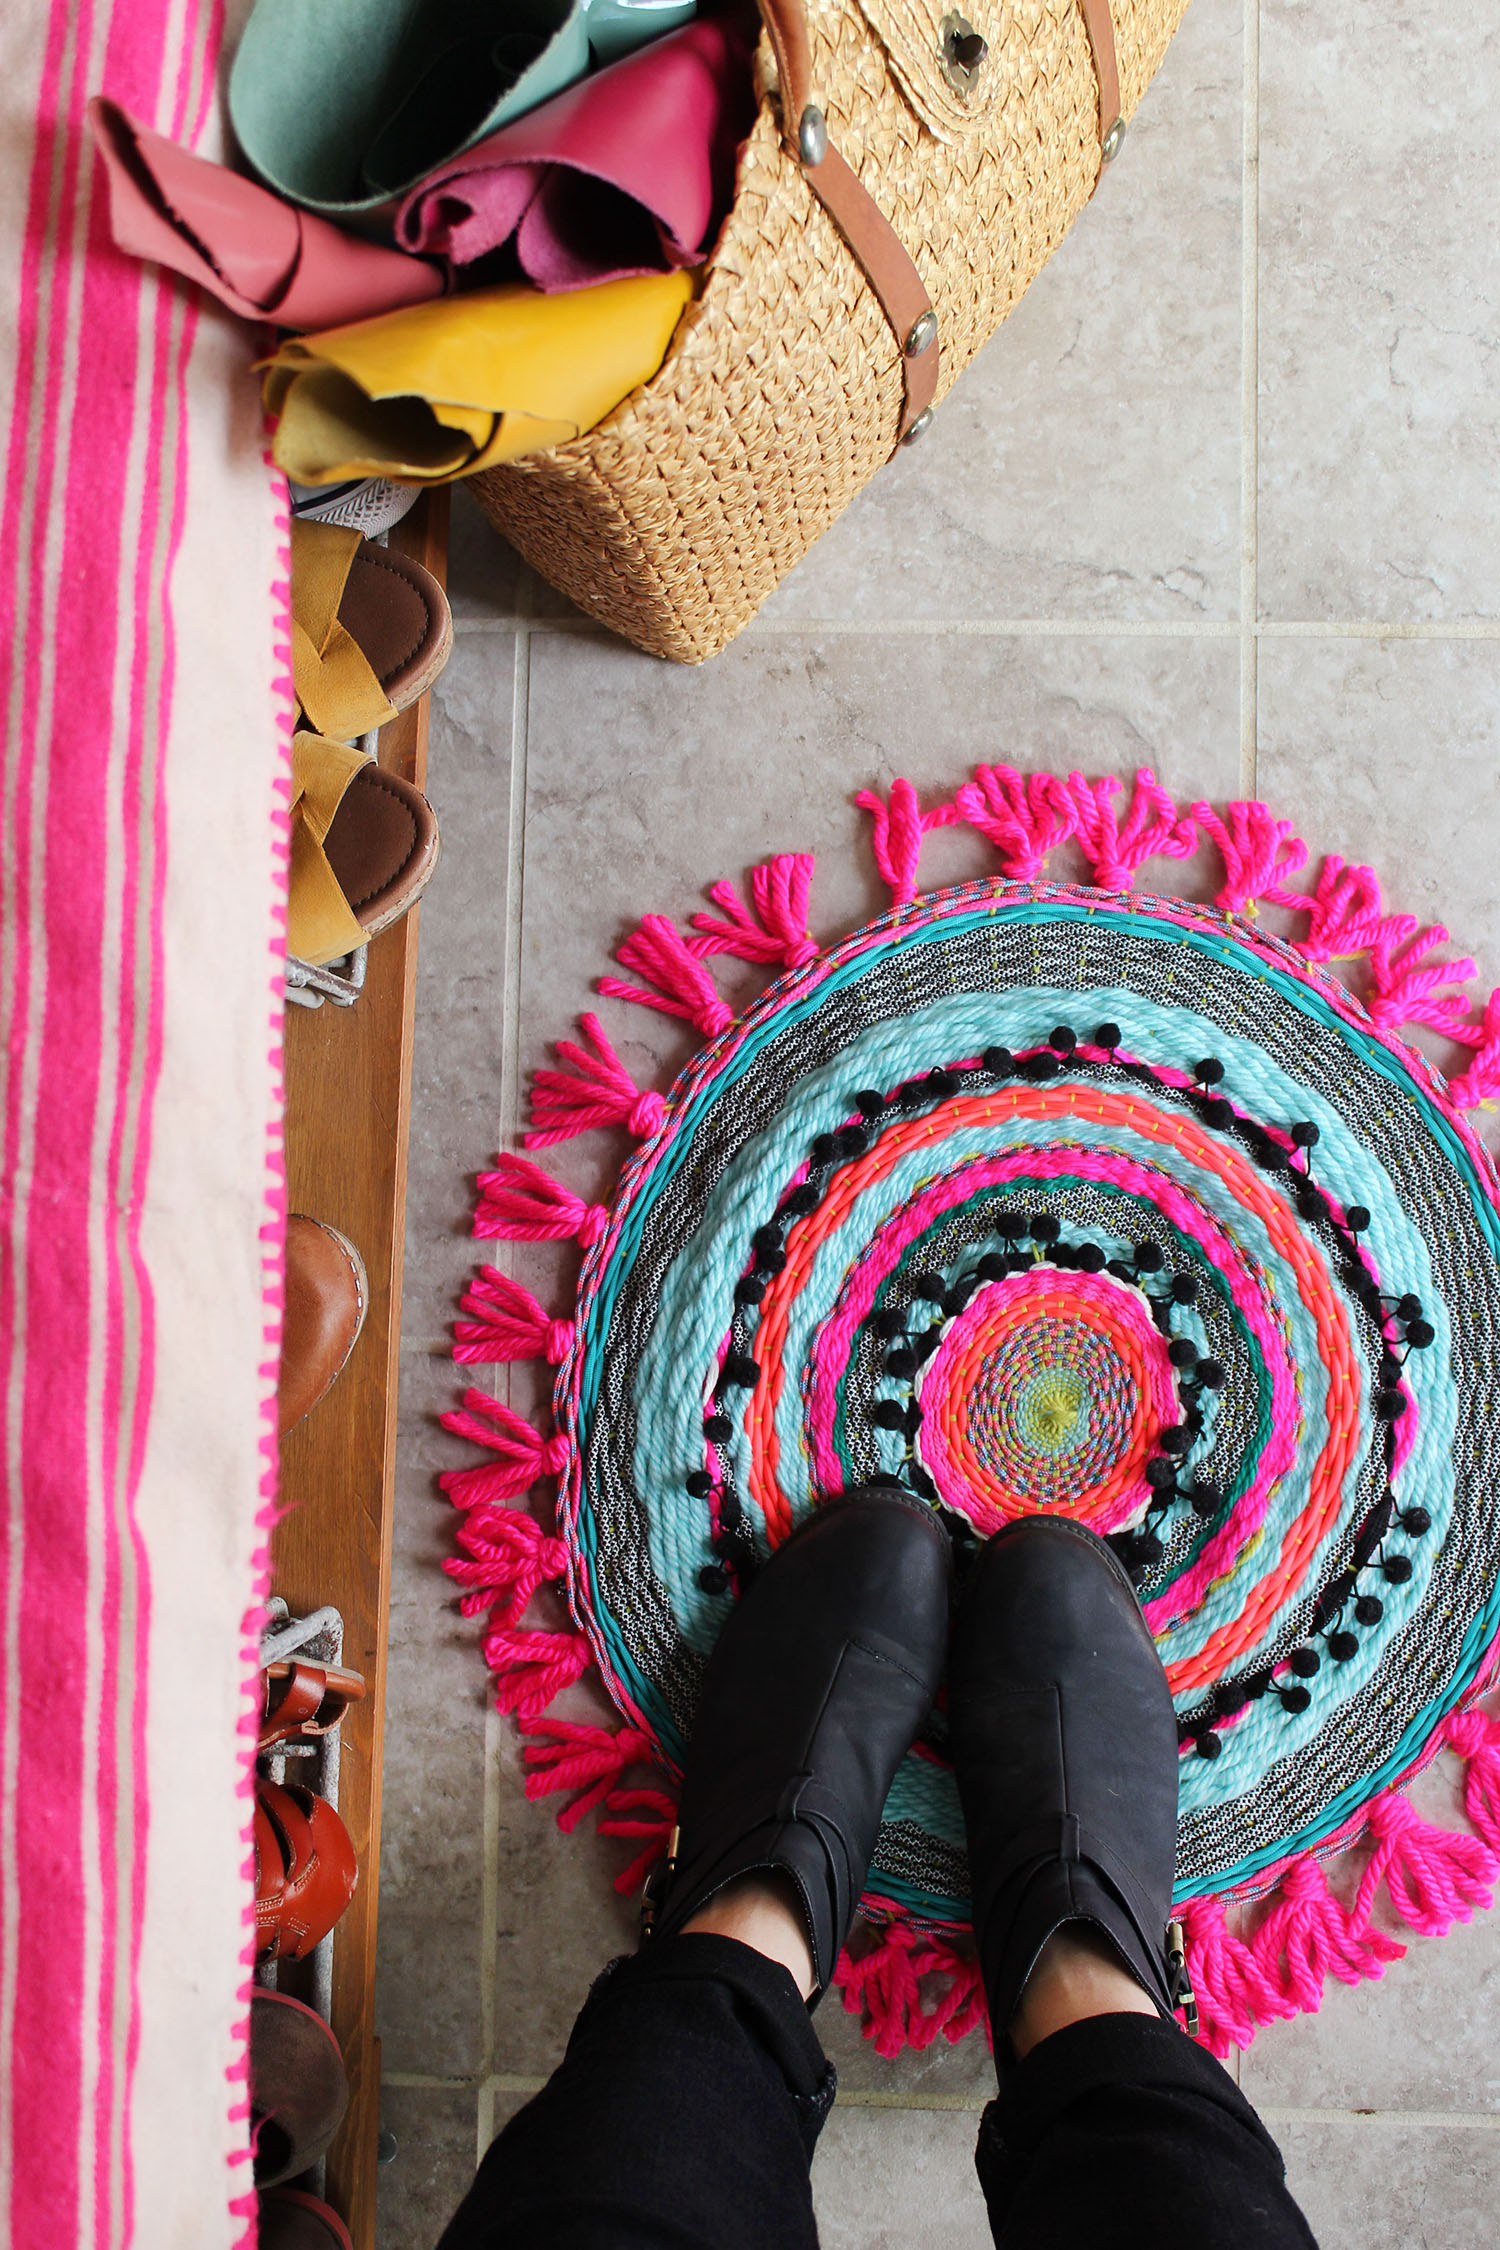 Weave your own circle rug and bring tons of color and texture to your floors. Get the full tutorial at www.abeautifulmess